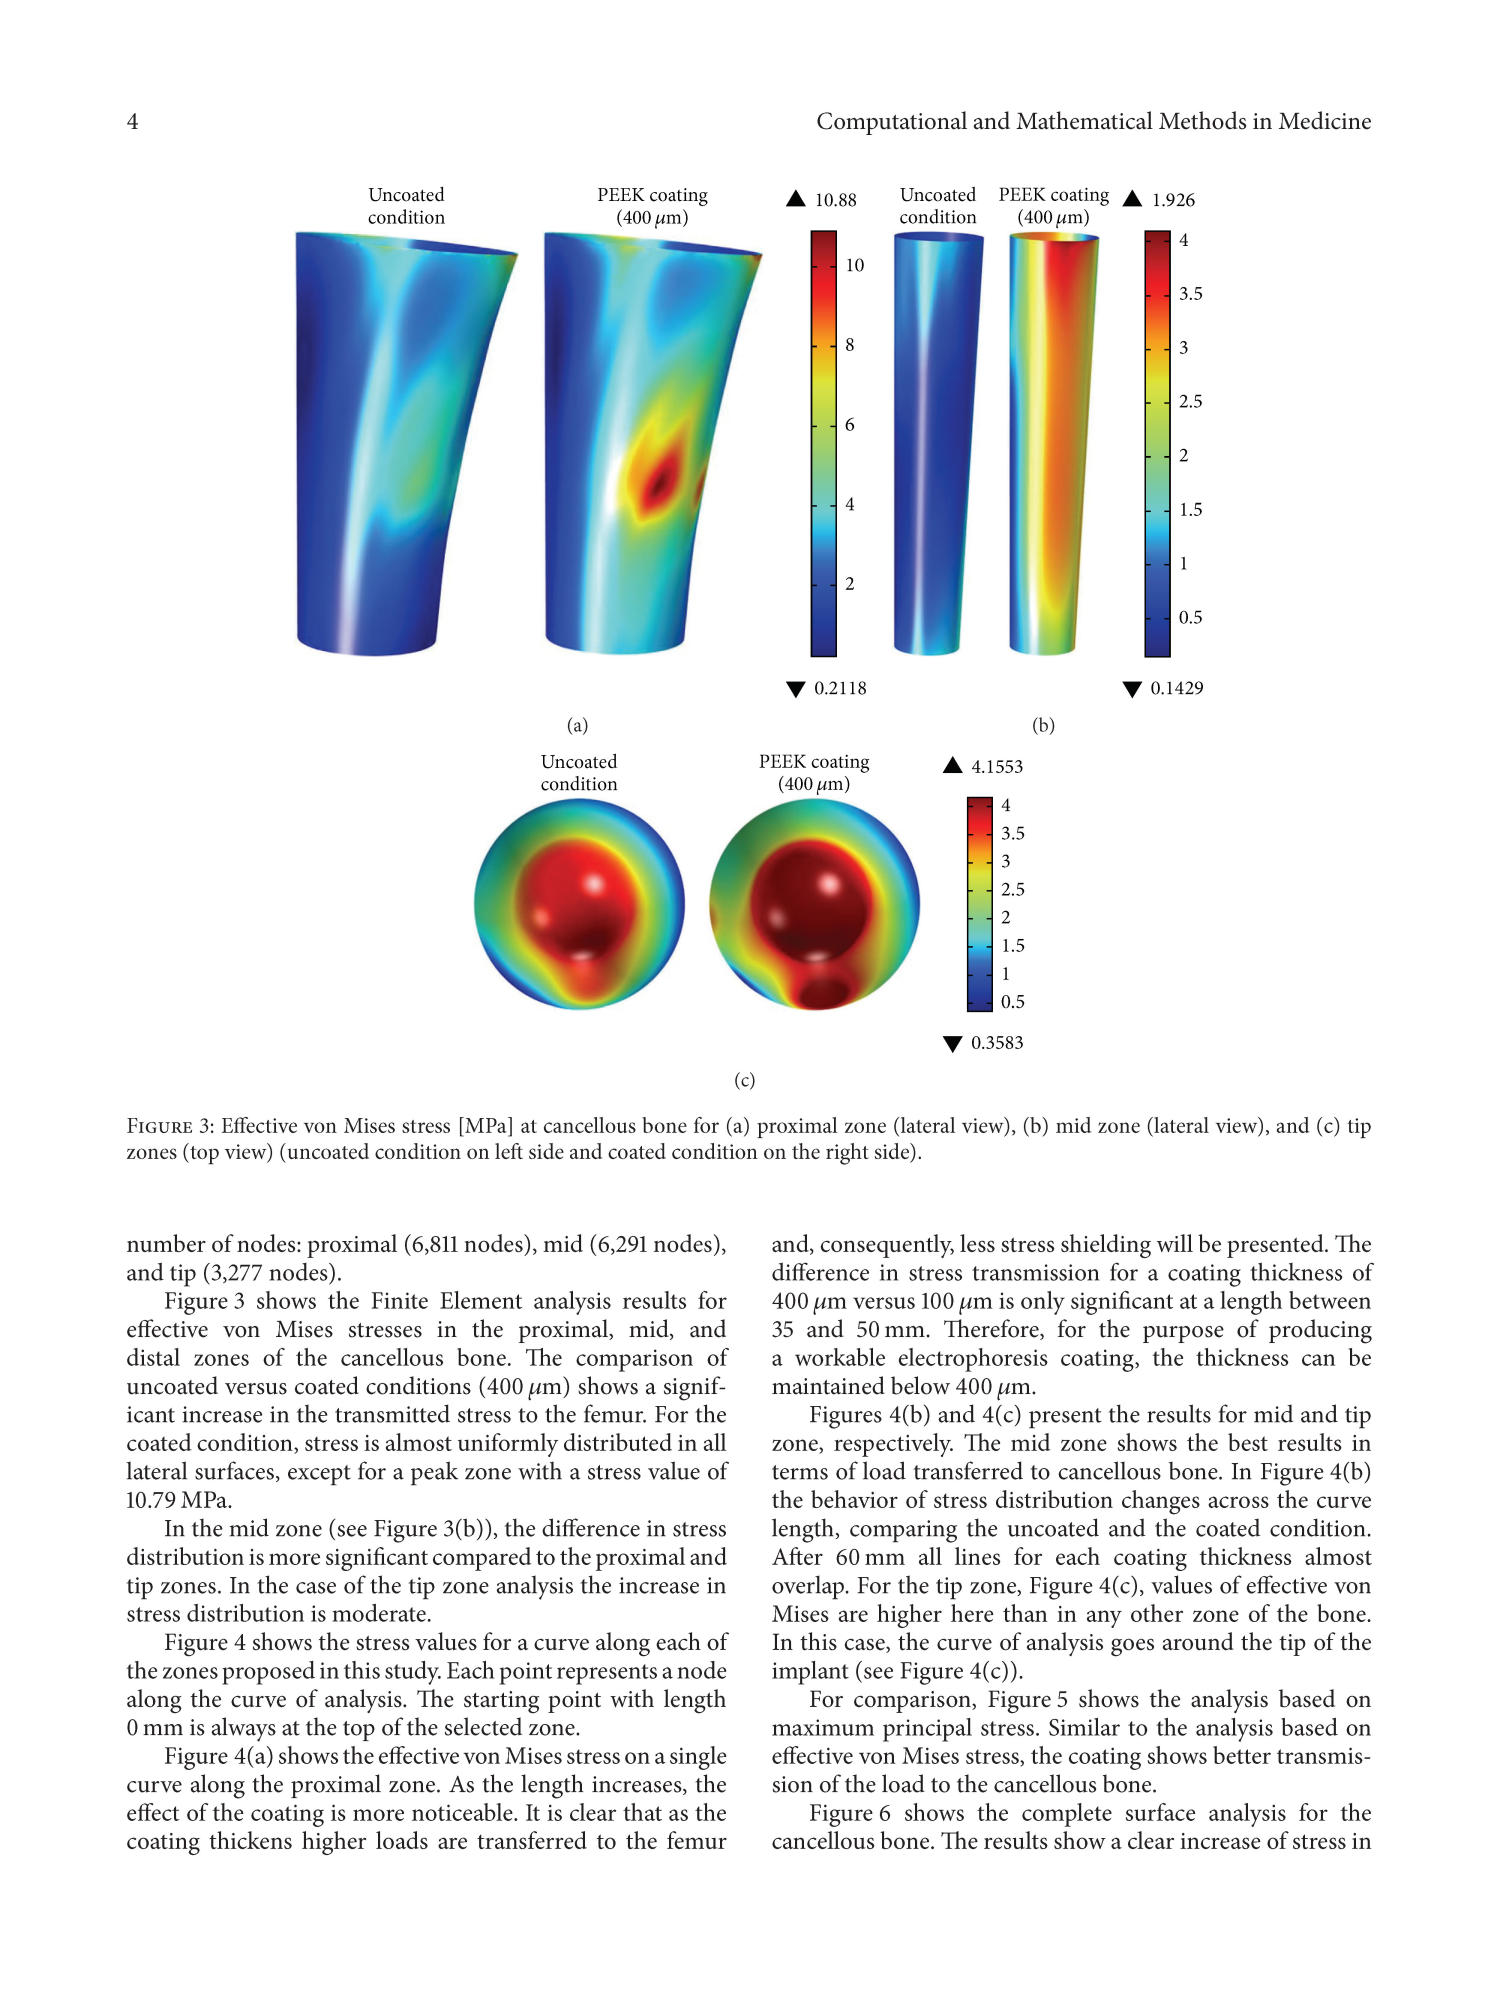 Influence of PEEK Coating on Hip Implant Stress Shielding: A Finite Element Analysis                                                                                                      4